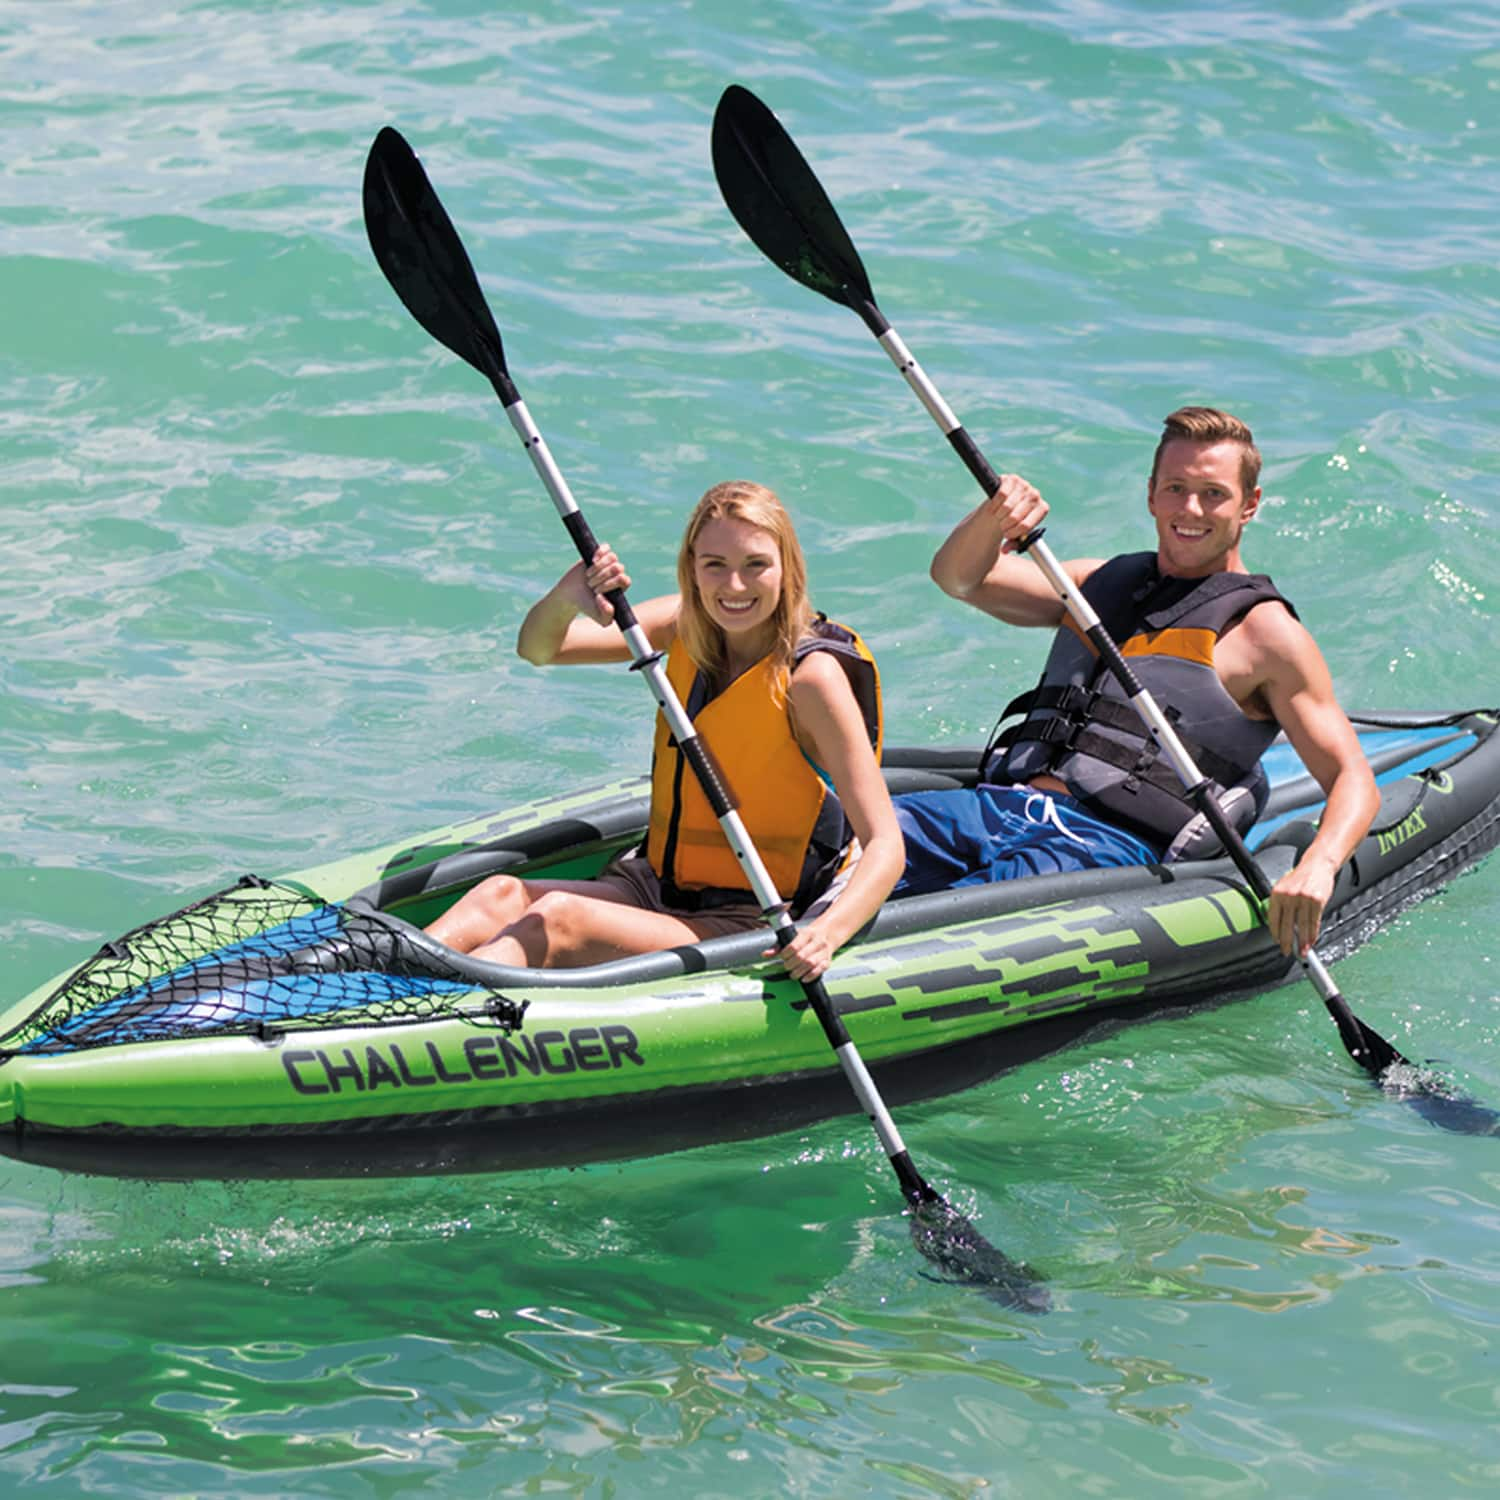 Intex Challenger K2 Inflatable Kayak with Oars and Hand Pump $59.99 FS